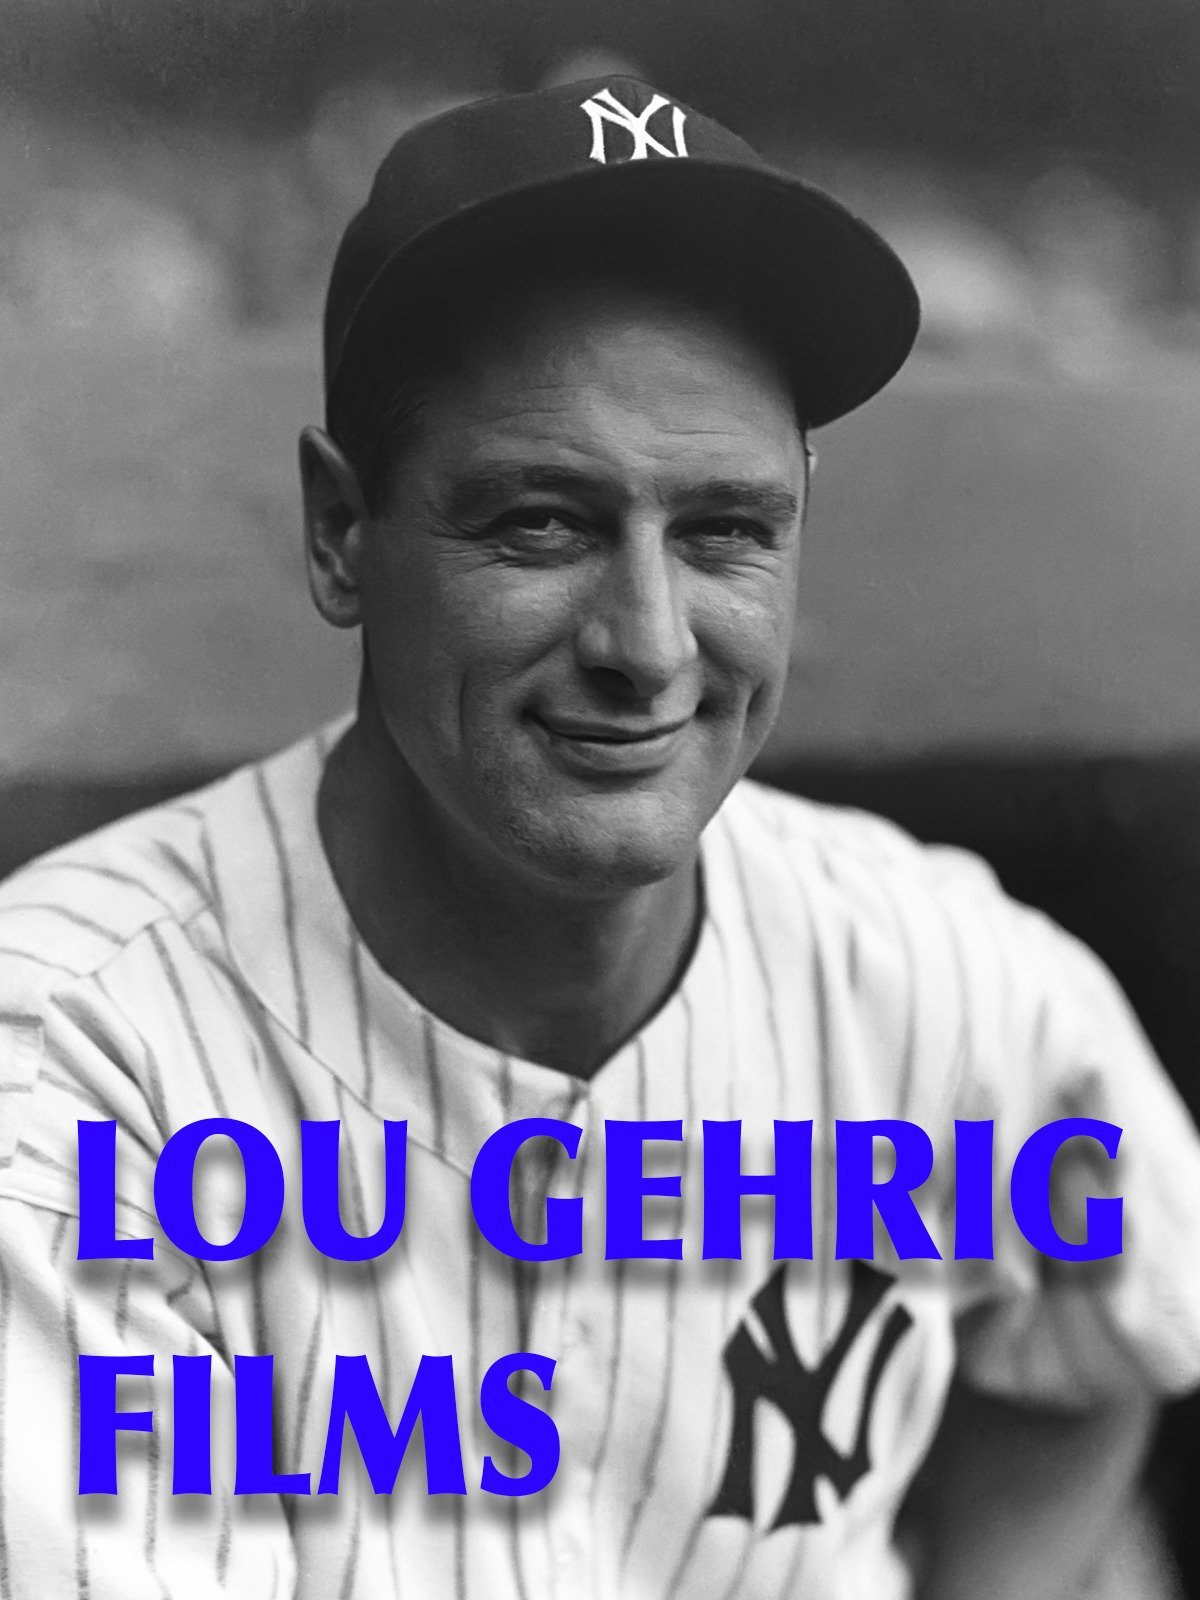 Lou Gehrig Films on Amazon Prime Instant Video UK